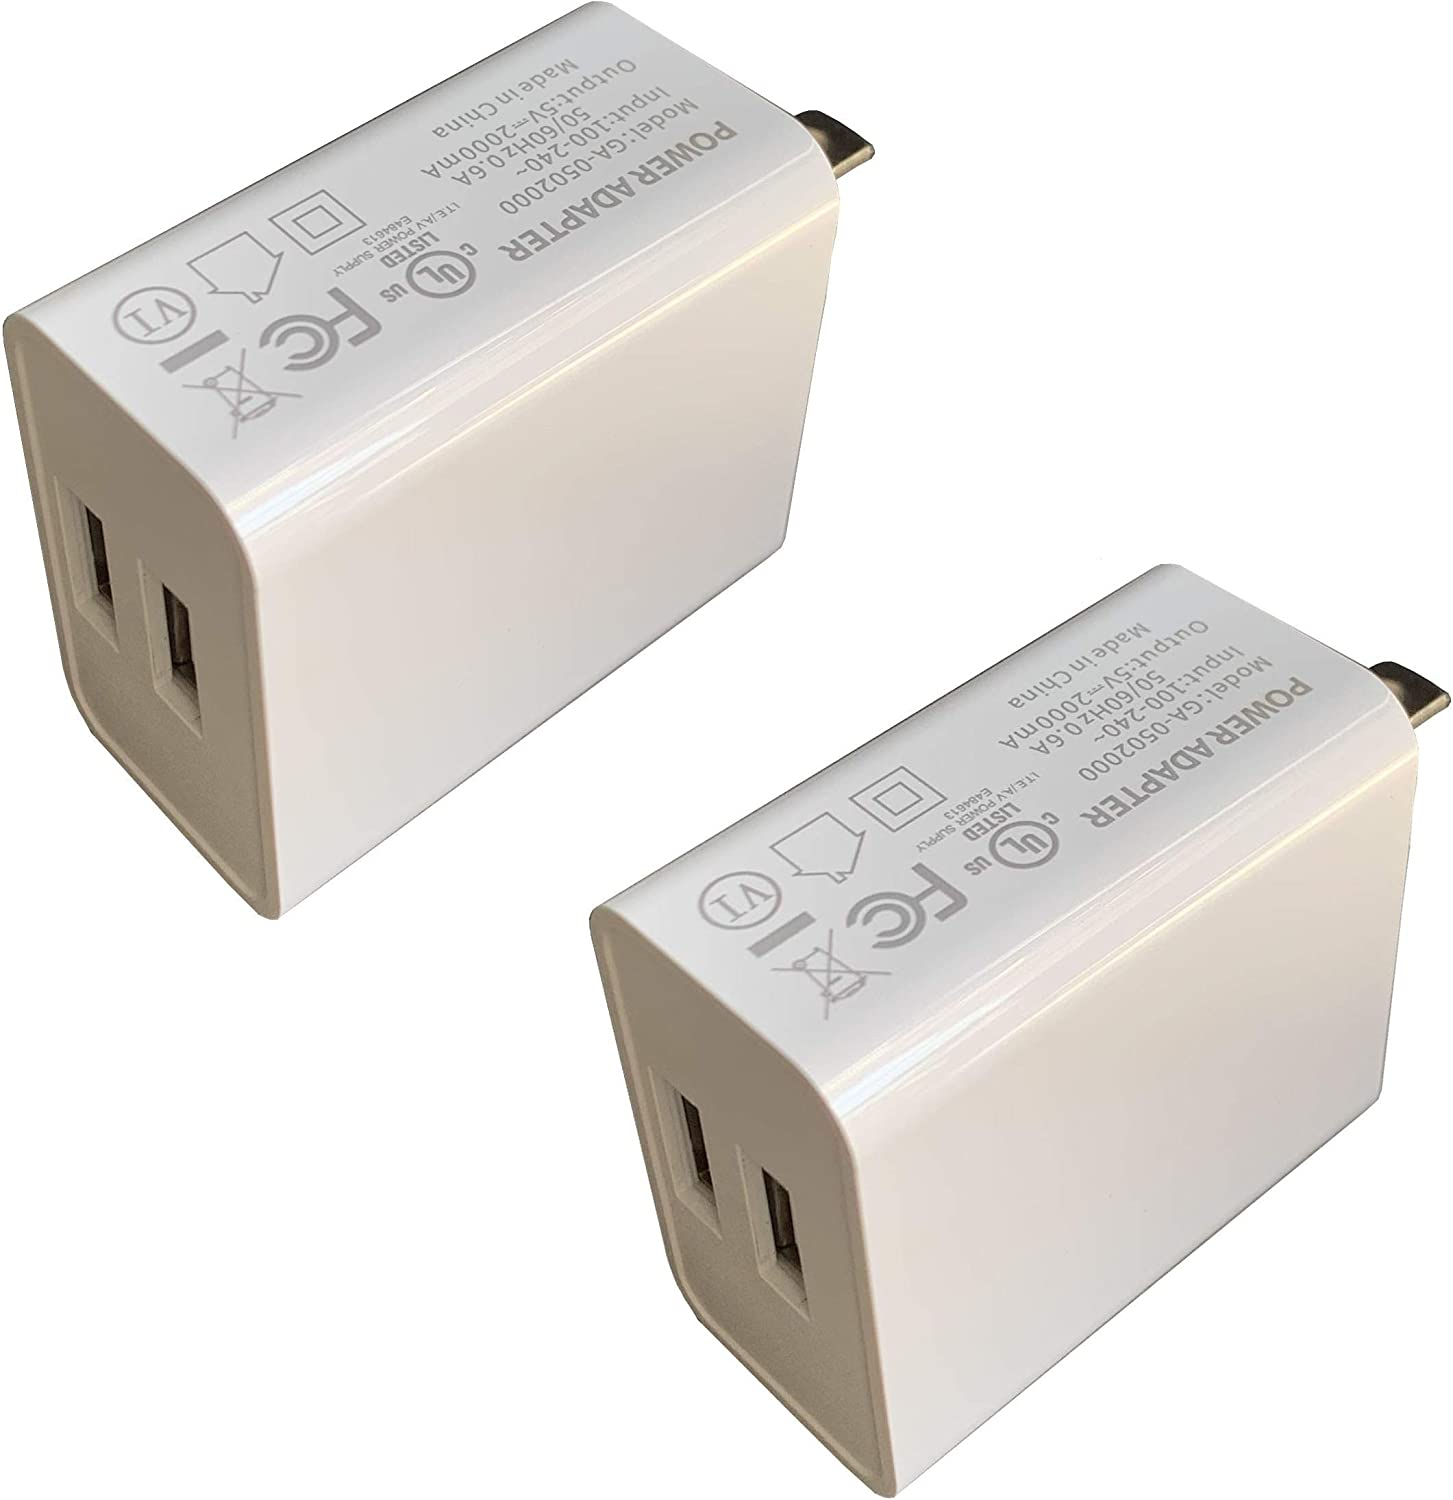 Wall Charger, USB Adapter, SUPWISER 2 Pack 10W Dual Port Quick Charger Plug Cube Replacement for iPad iPhone 11/XR/XS/8/7/6S/6 Plus,Samsung Galaxy S7/S6/S5 Edge, LG, HTC, Moto, Kindle and More